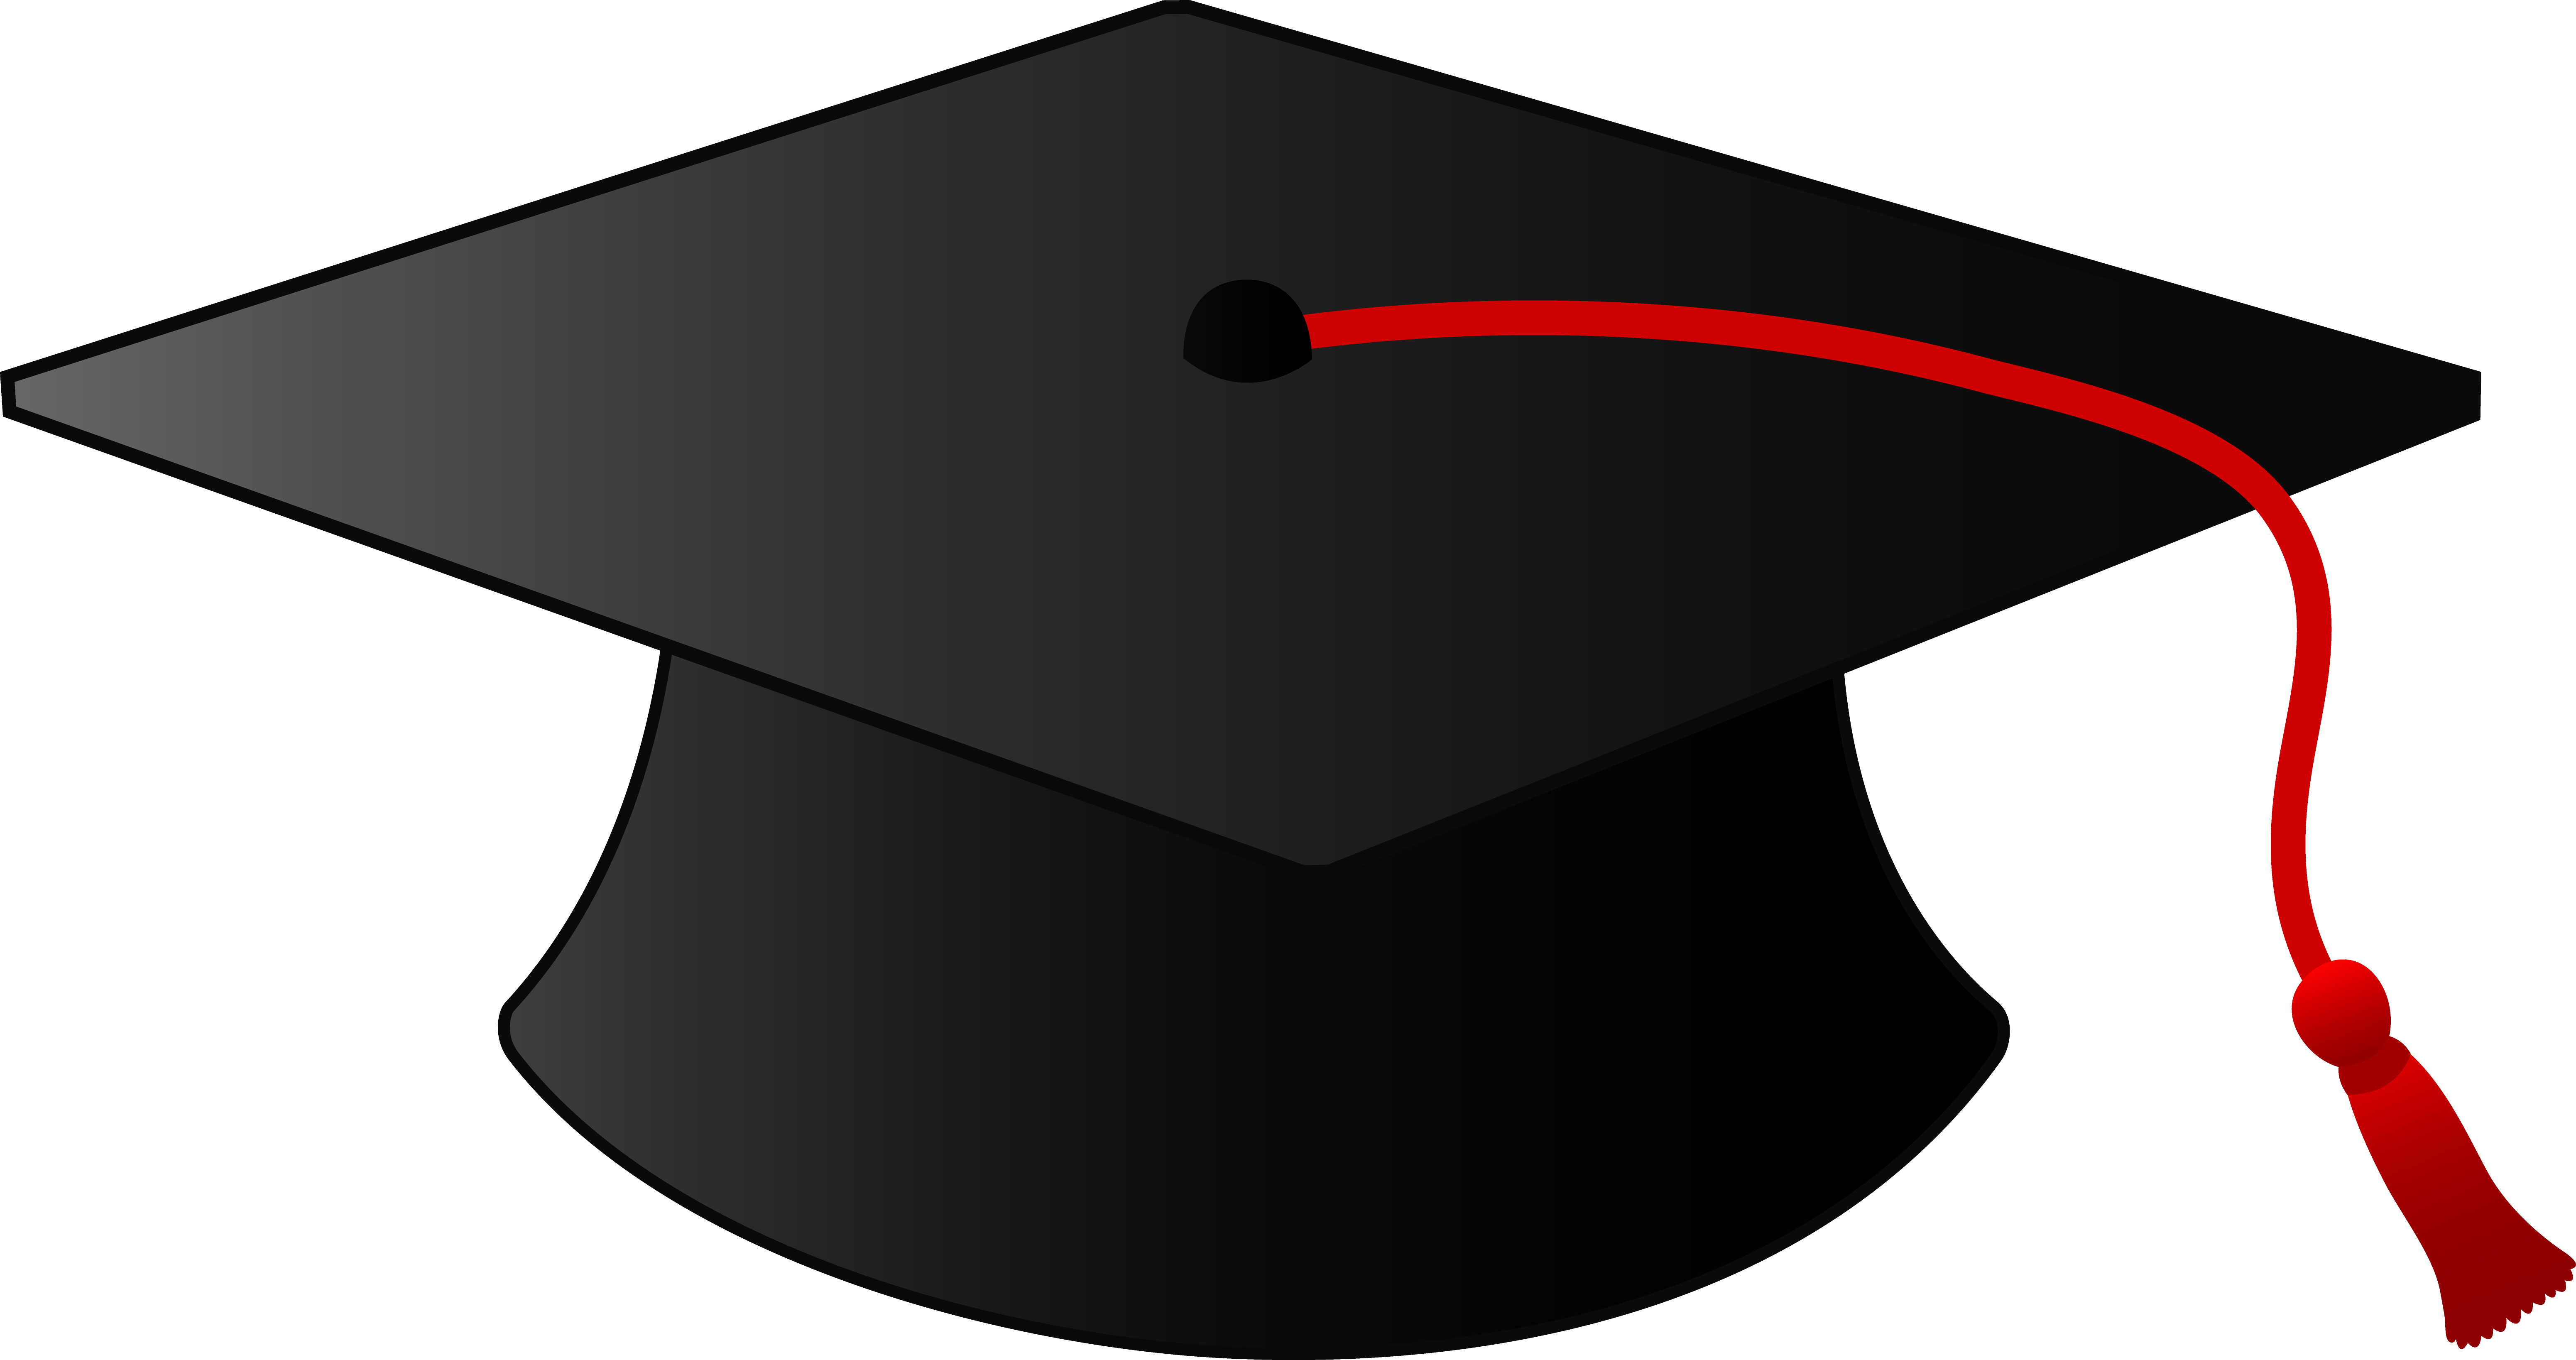 6204x3275 Graduation cap graduation hat free clipart education 2 2